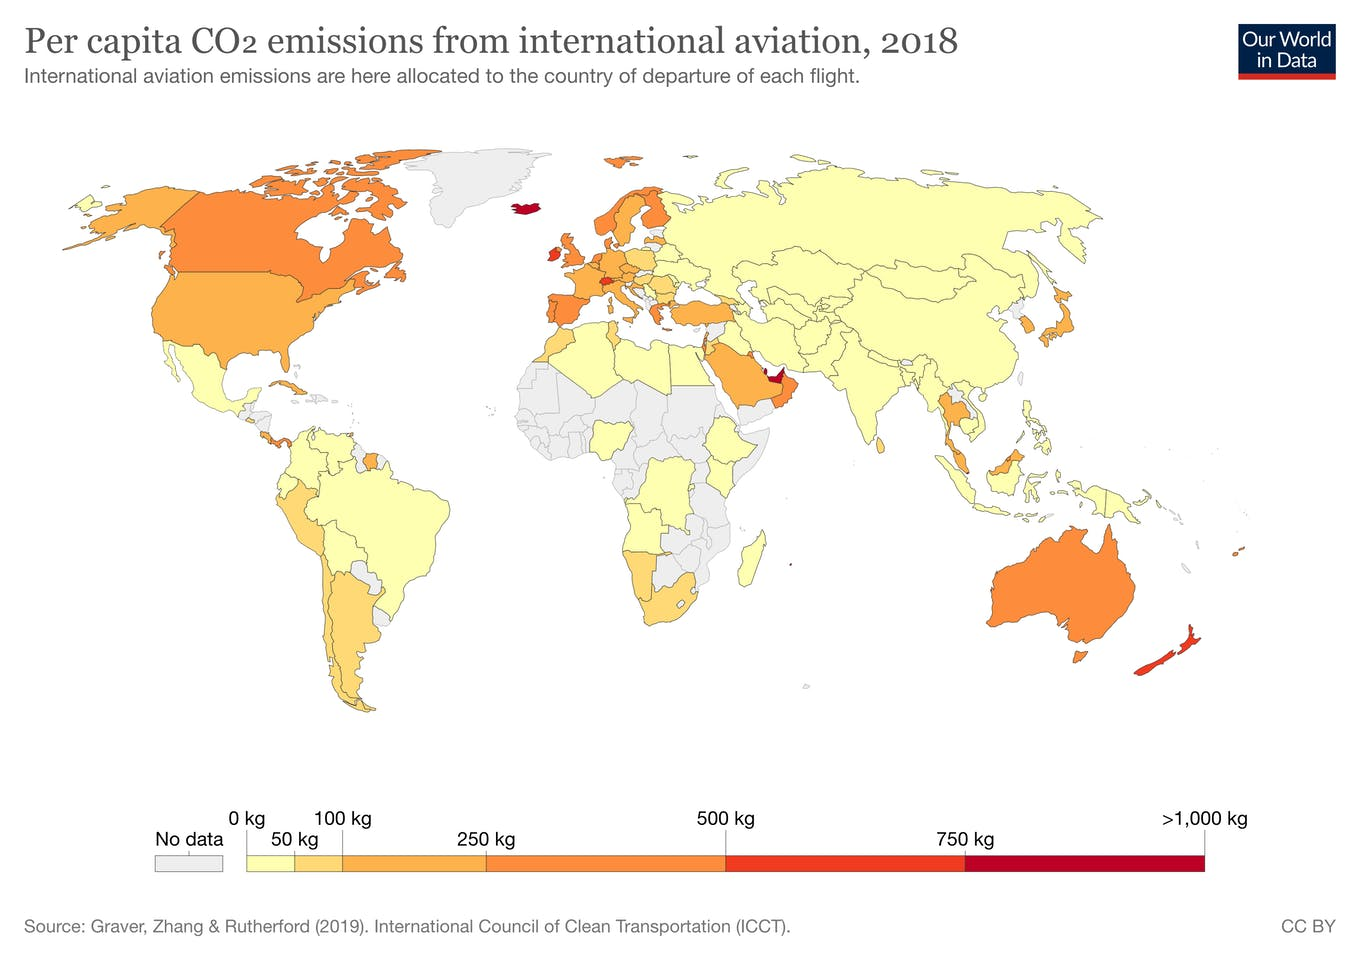 Per capital CO2 emissions from international aviation, 2018